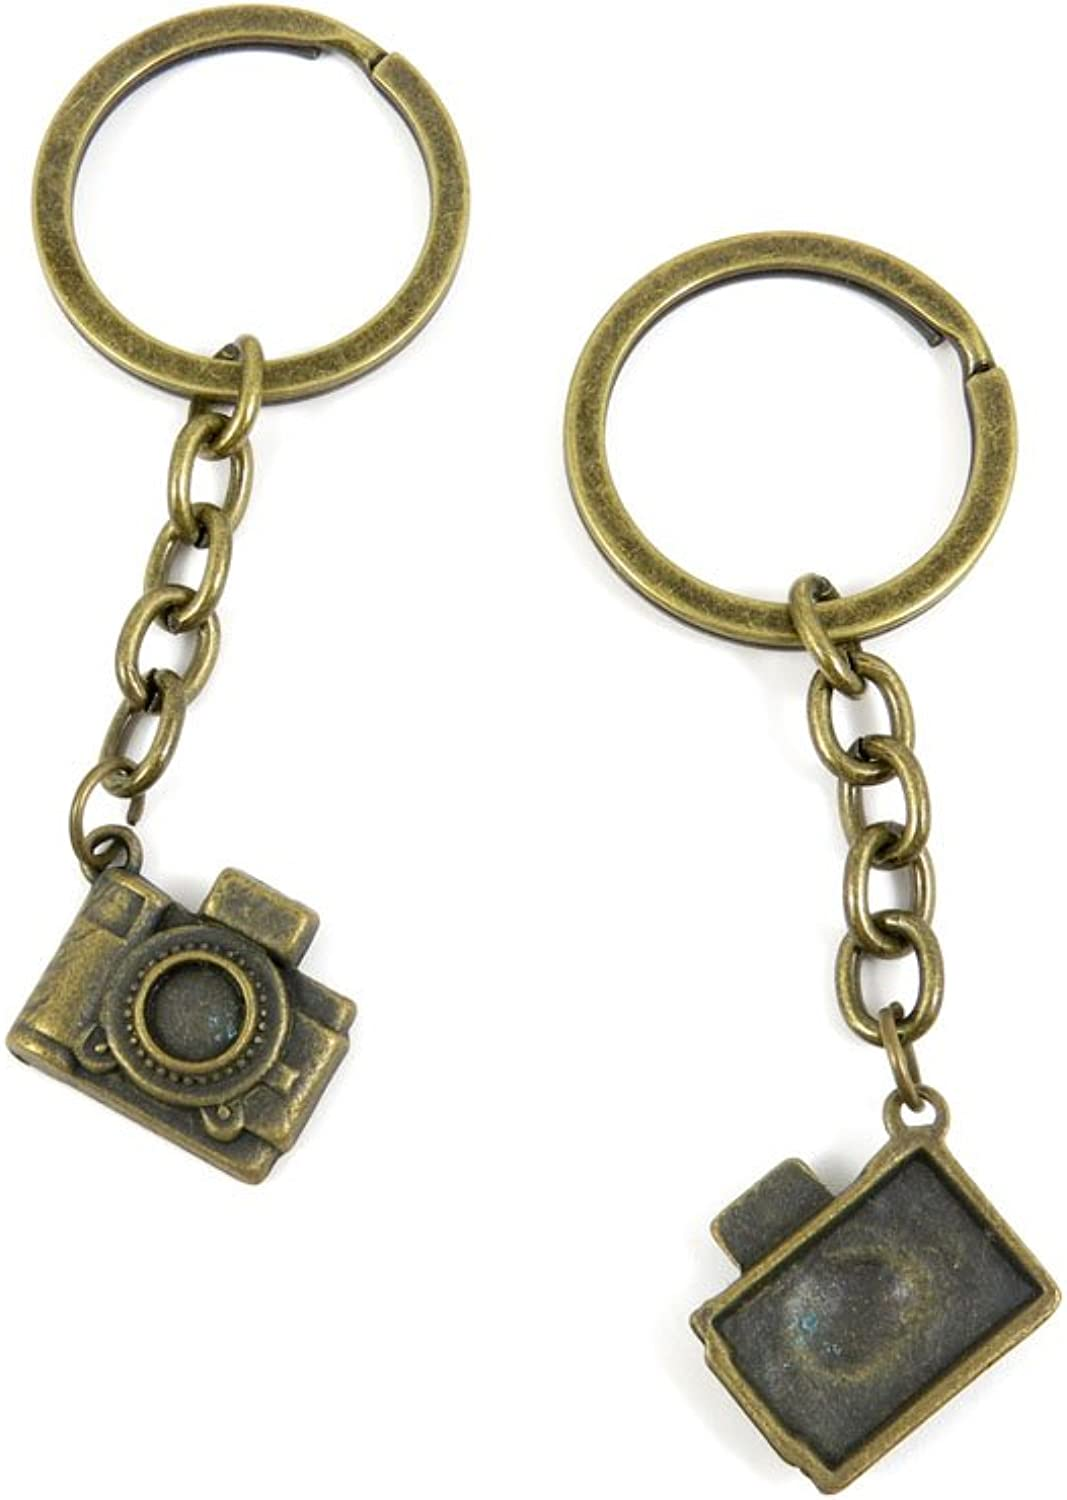 100 PCS Keyrings Keychains Key Ring Chains Tags Jewelry Findings Clasps Buckles Supplies I3GT1 Camera